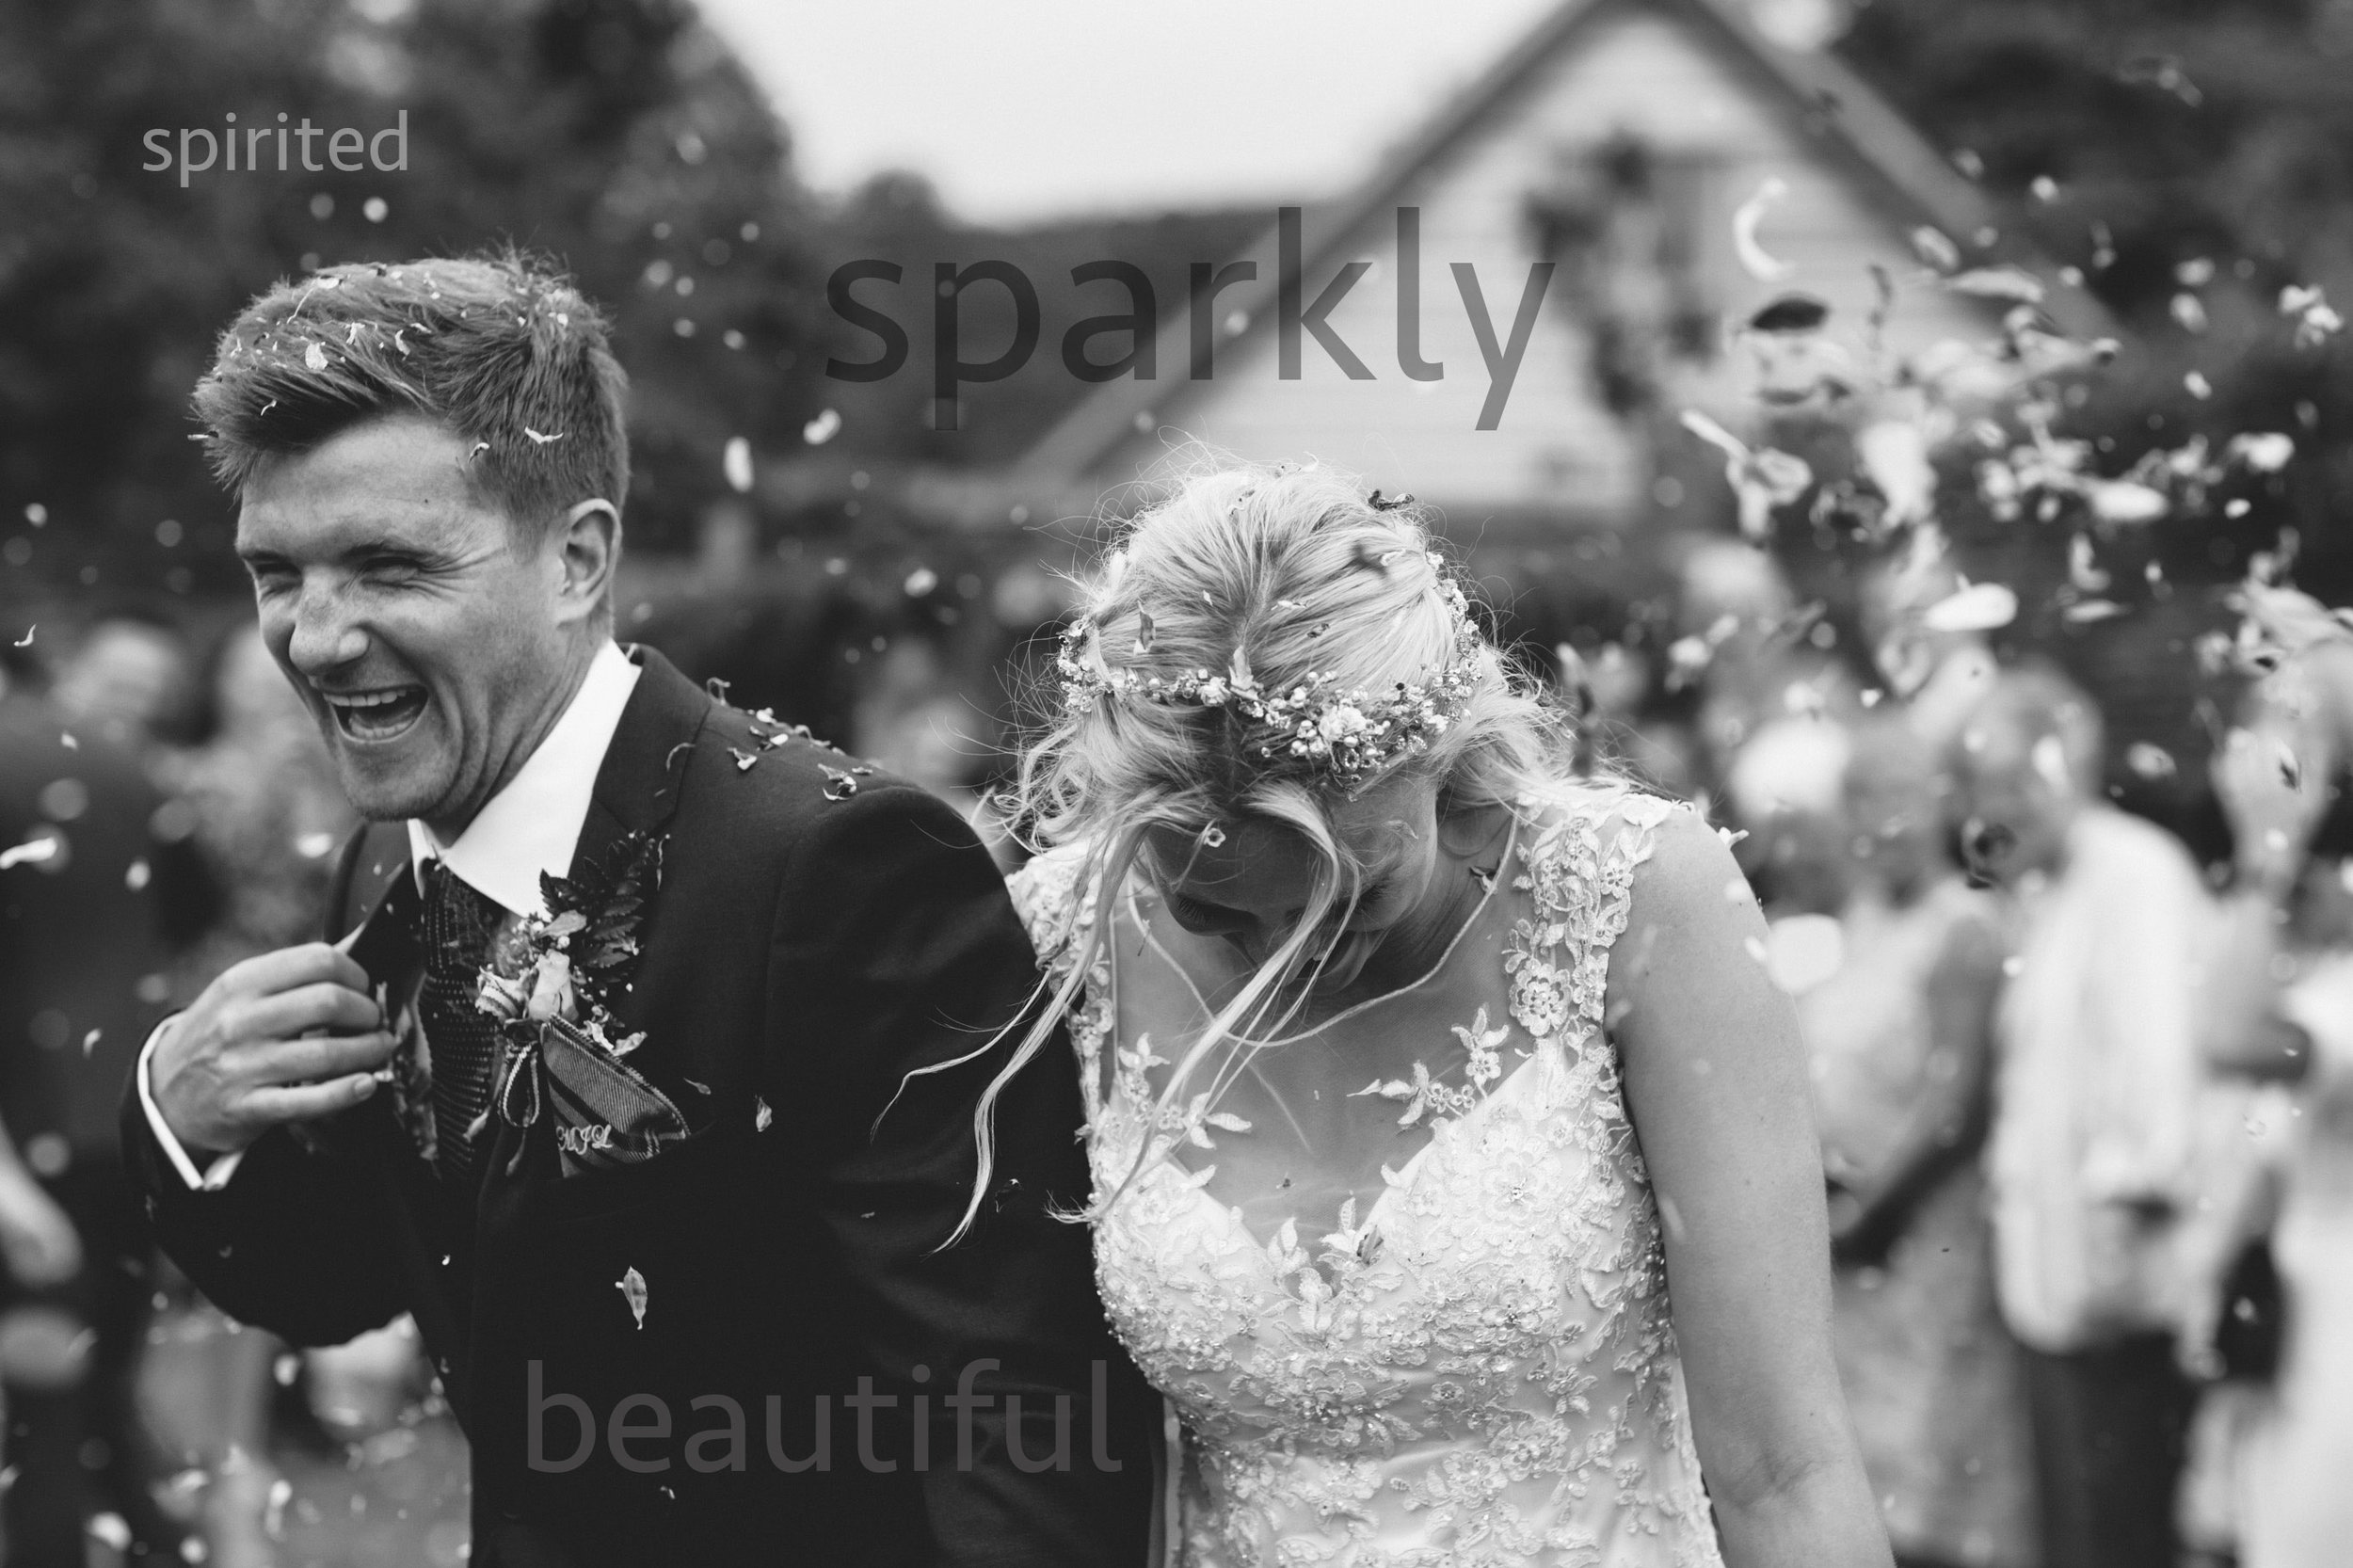 Curious-Rose-Photography-Birmingham-wedding-photography-Creative-wedding-photography-bride-and-groom-wedding-inspiration-confetti.jpg